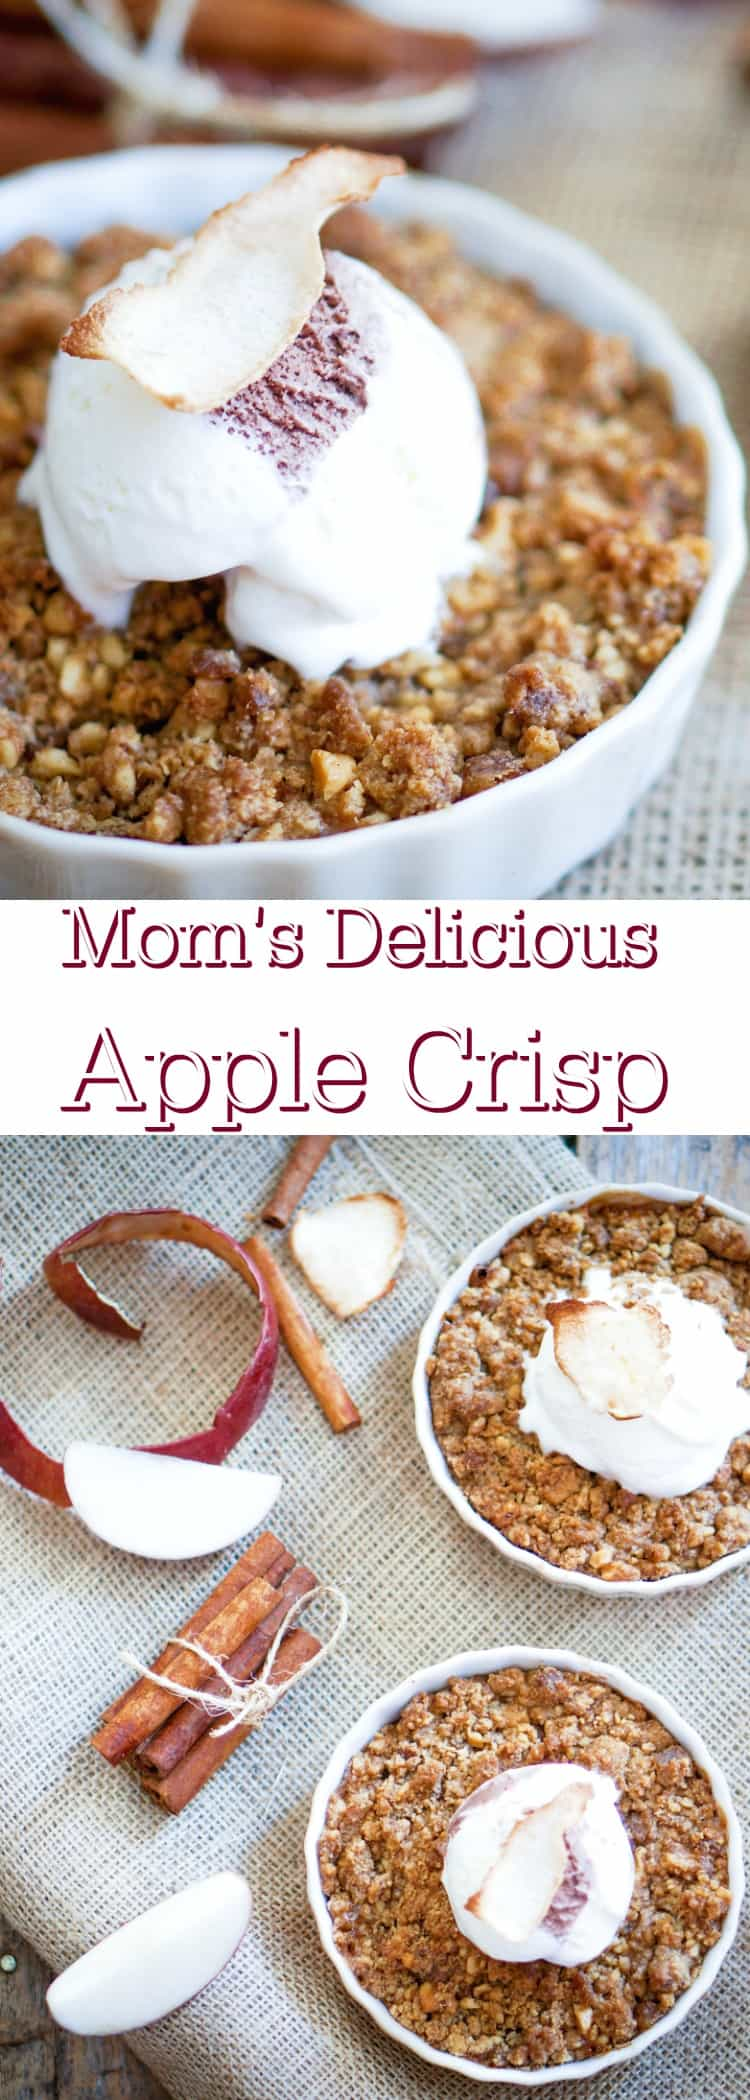 I think the secret to a great apple crisp is the apples and how you prepare them and also the crunchy sweet topping that is full of butter, brown sugar and other earthly delights!